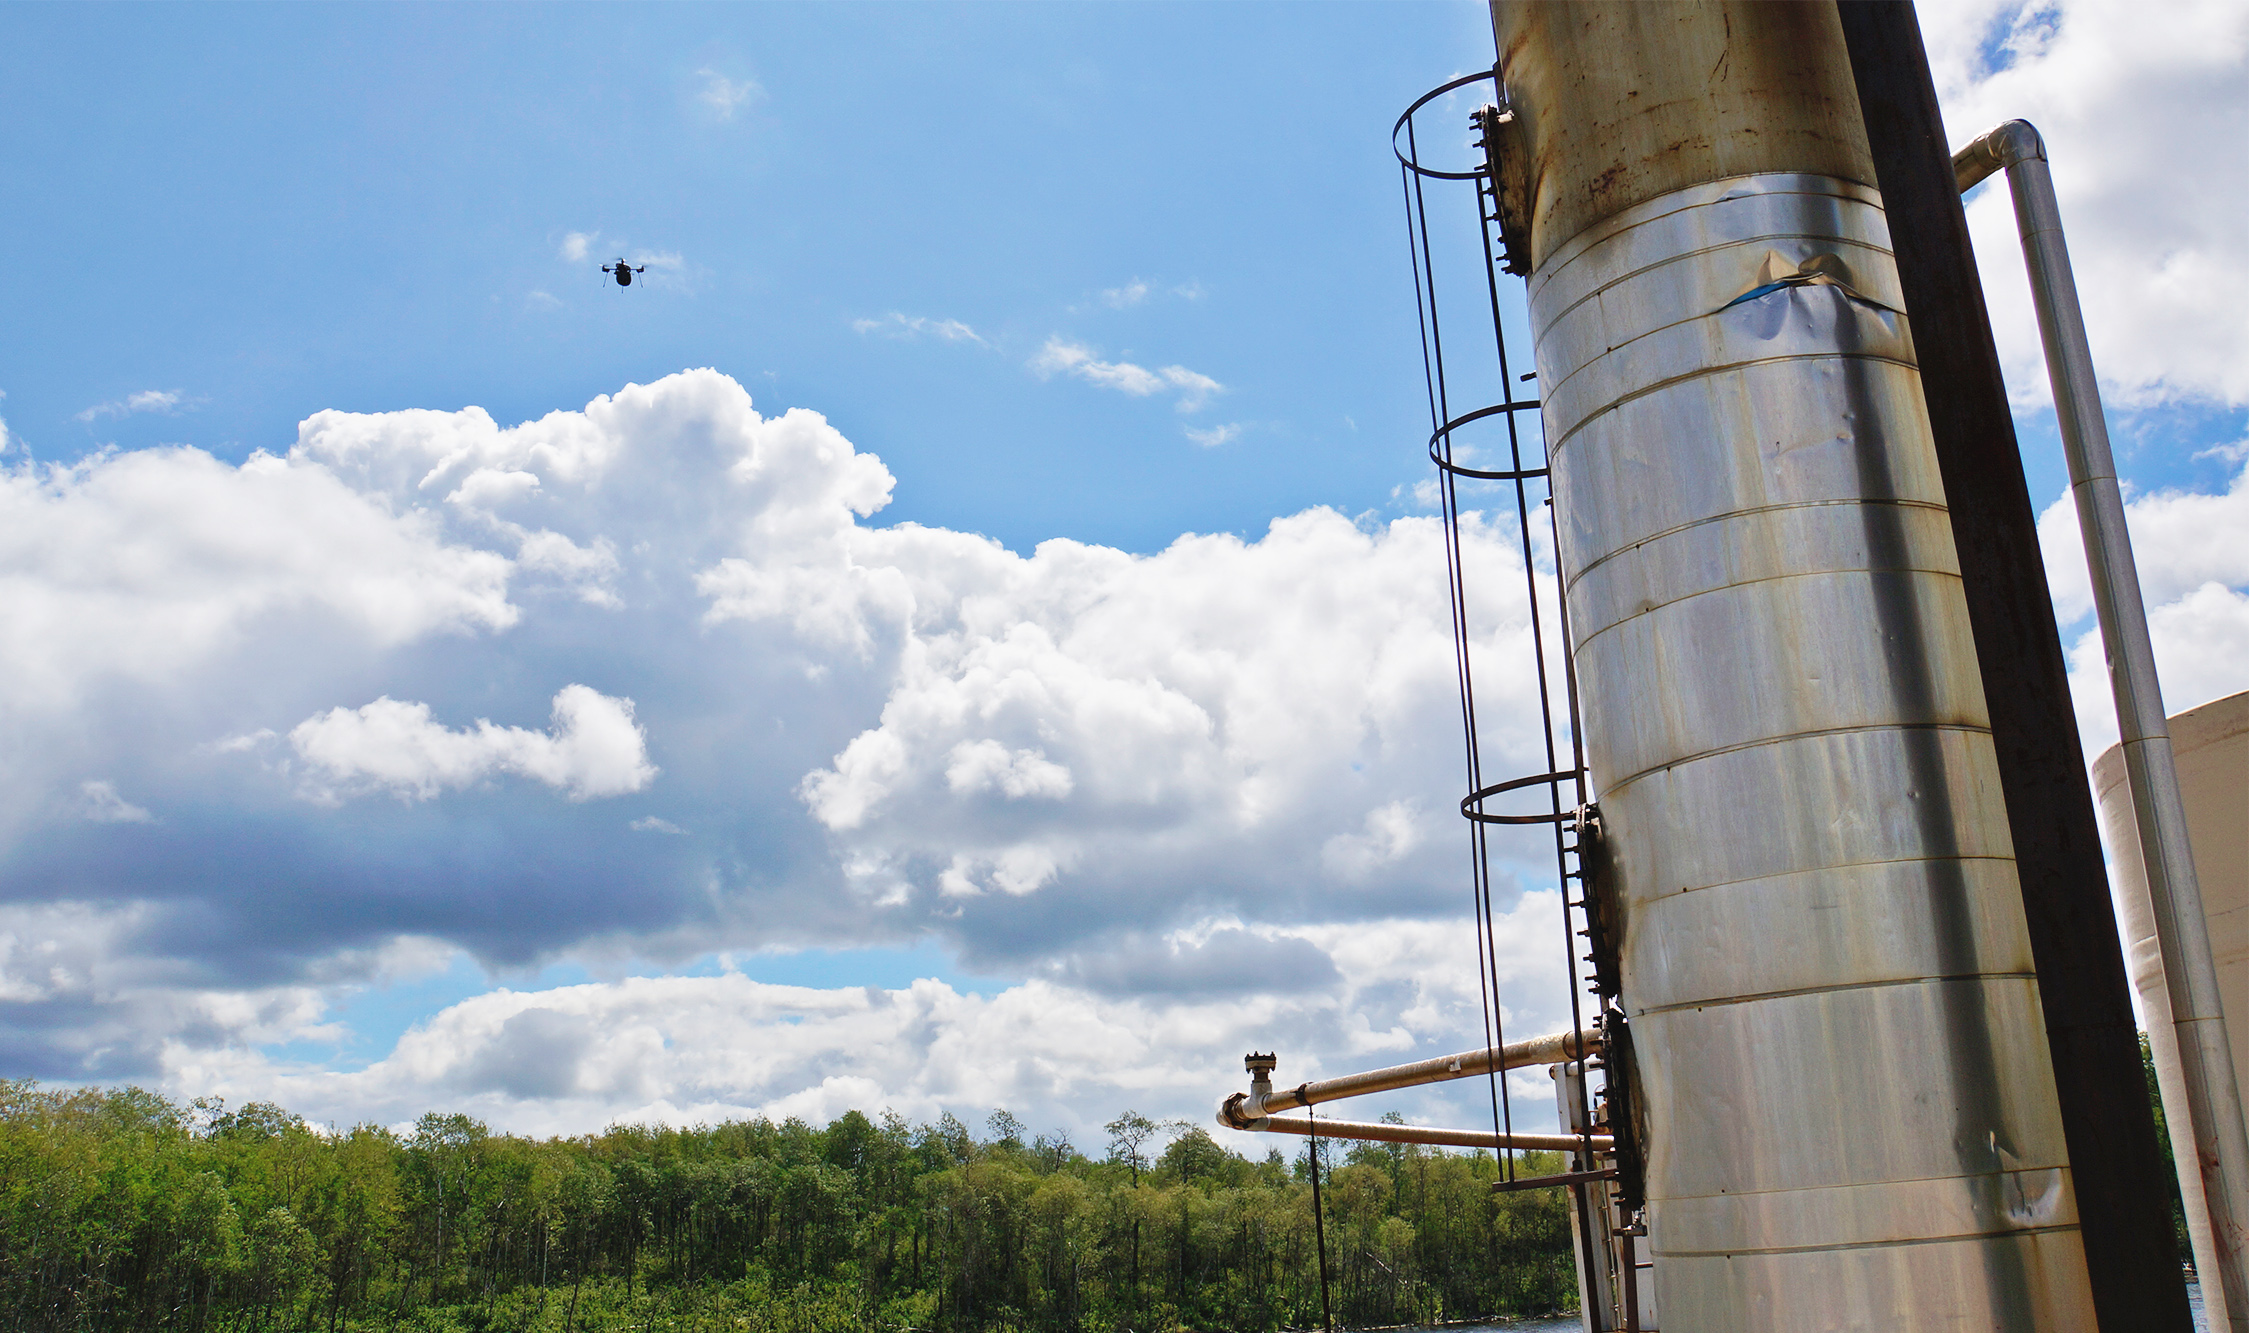 src uav flying around a work site sampling air quality